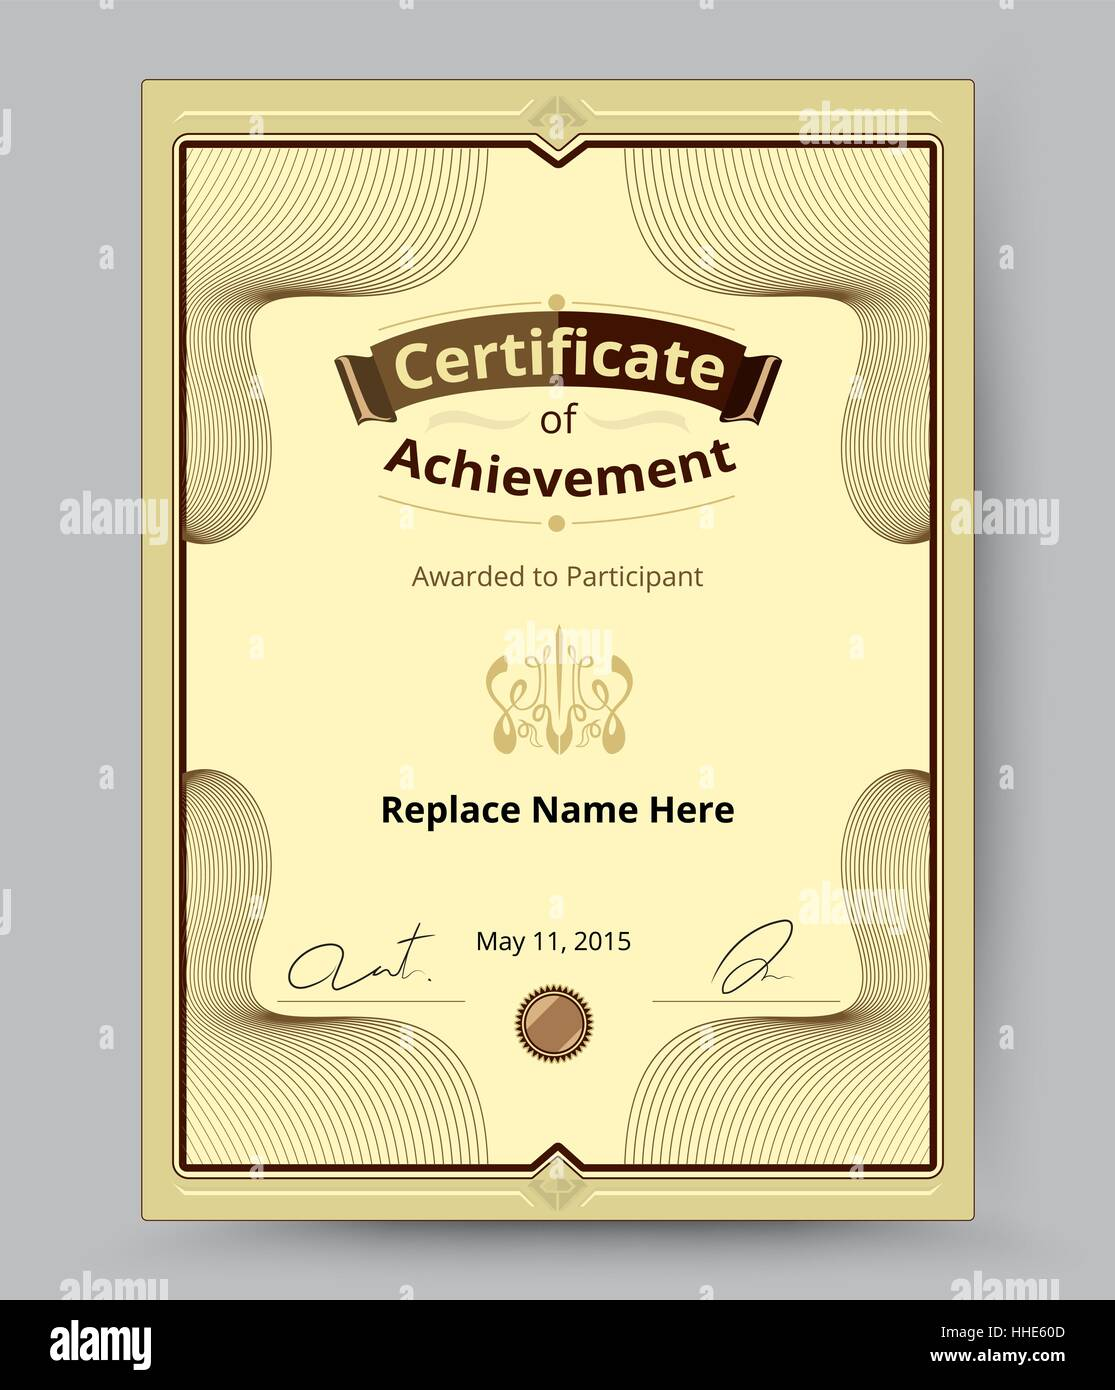 Luxury certificate border certificate template for replace name luxury certificate border certificate template for replace name and etc grand certified and congradtulation template xflitez Images